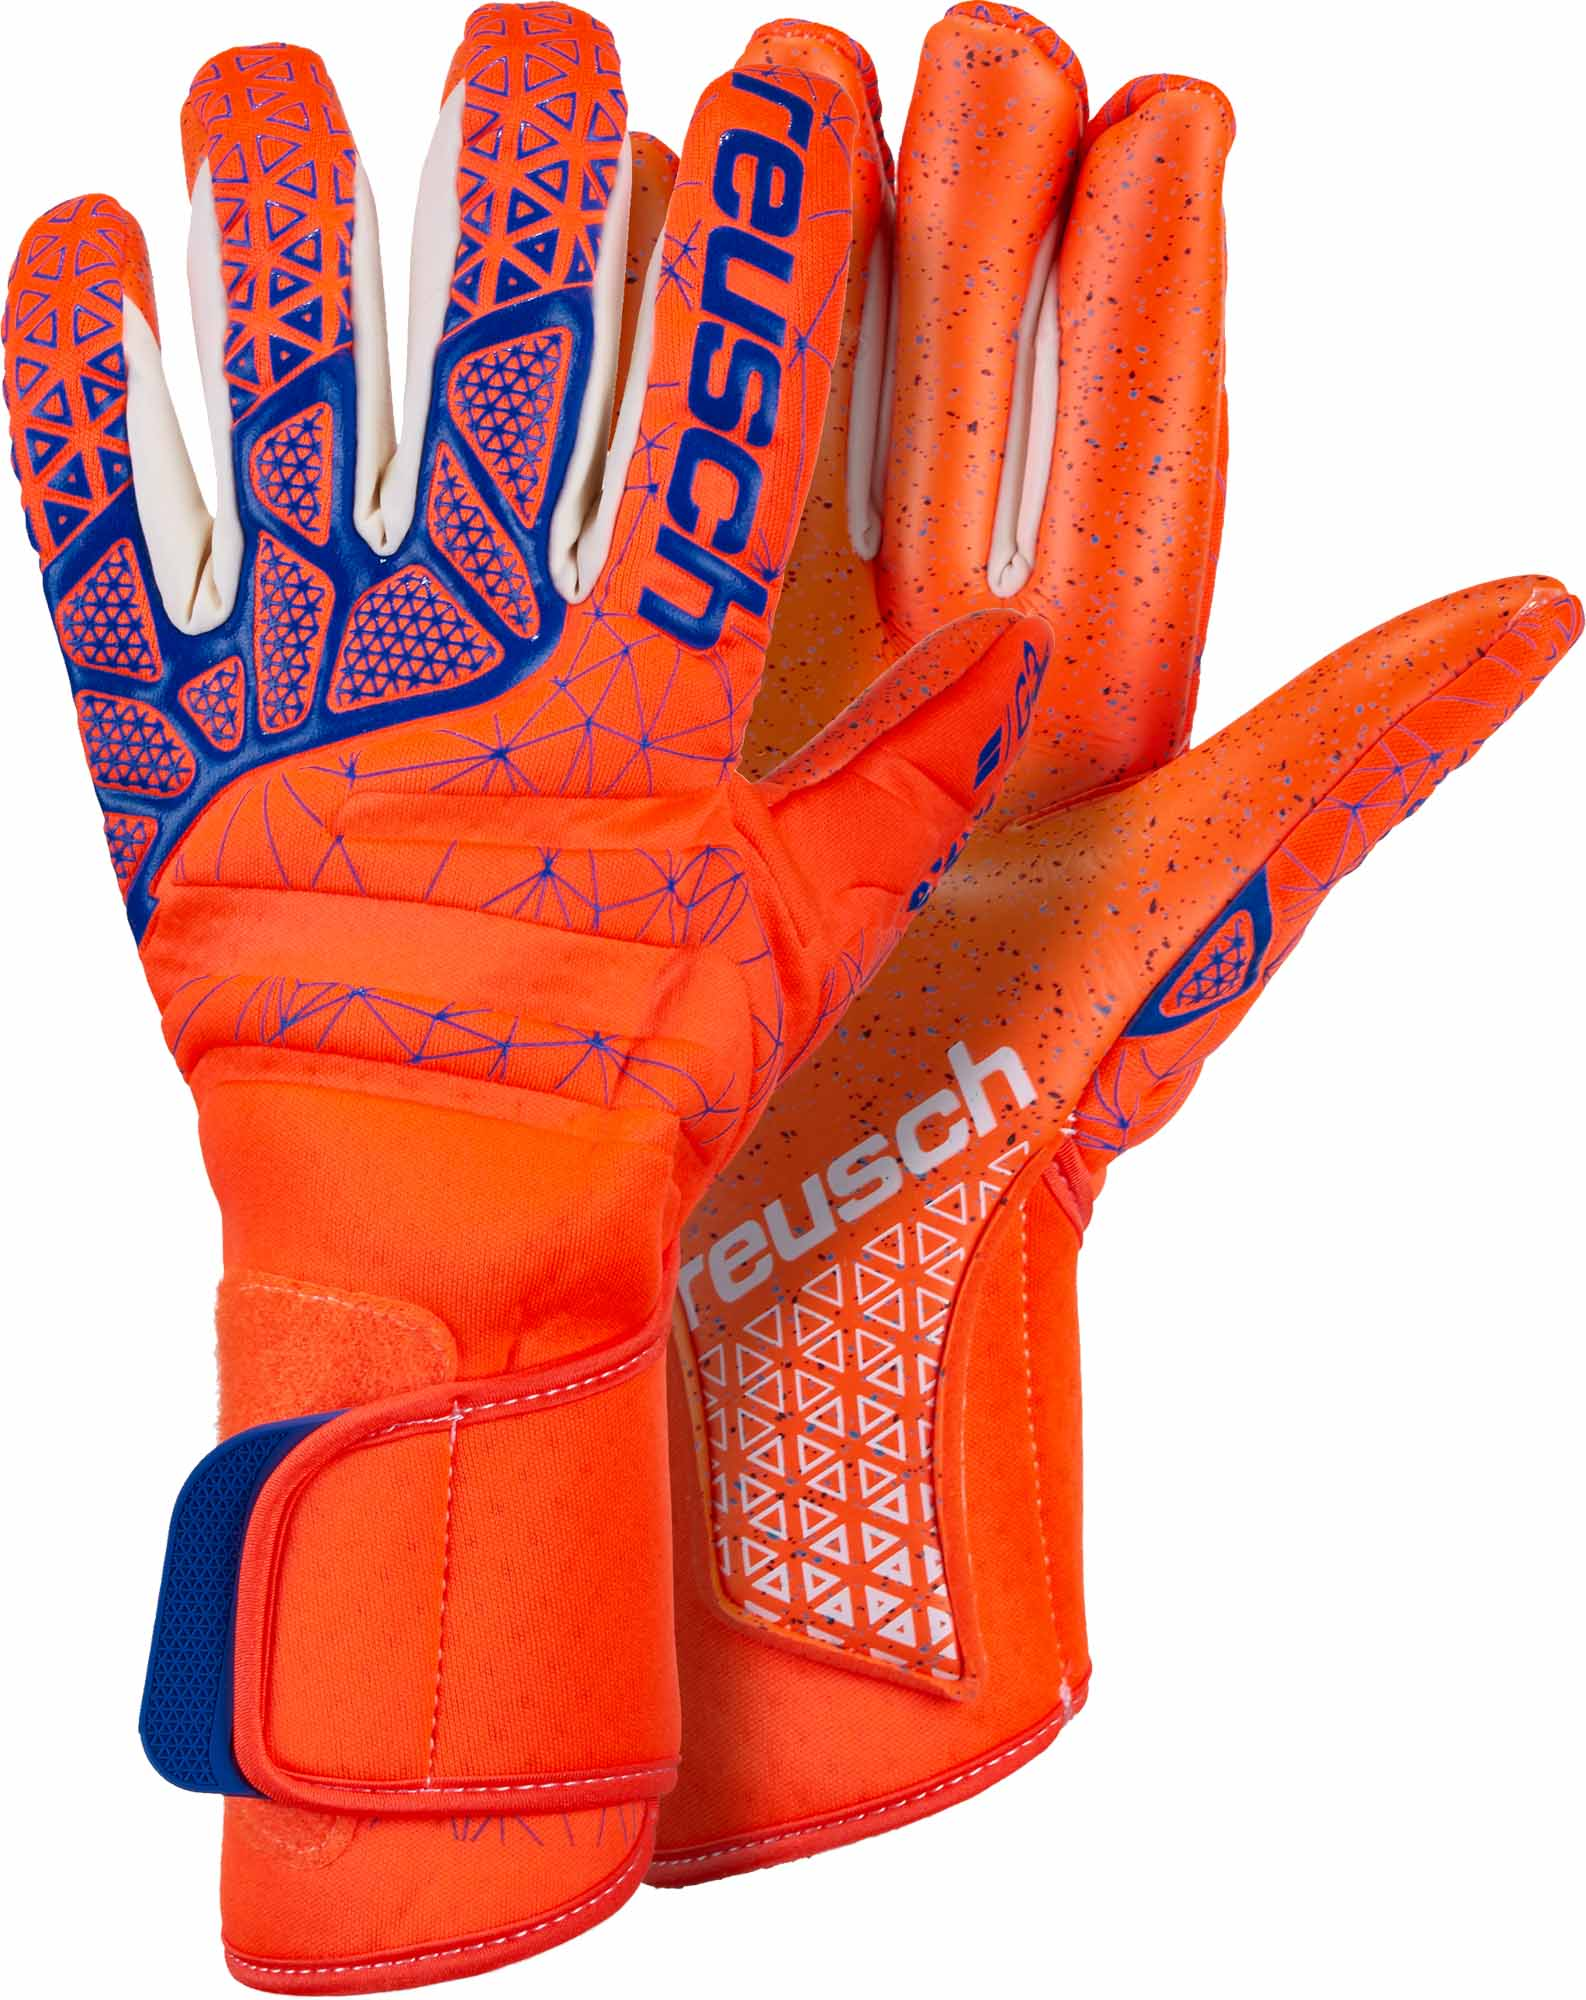 Reusch Pure Contact G3 Fusion Goalkeeper Gloves – Shocking Orange Blue b3fe8297d4d0